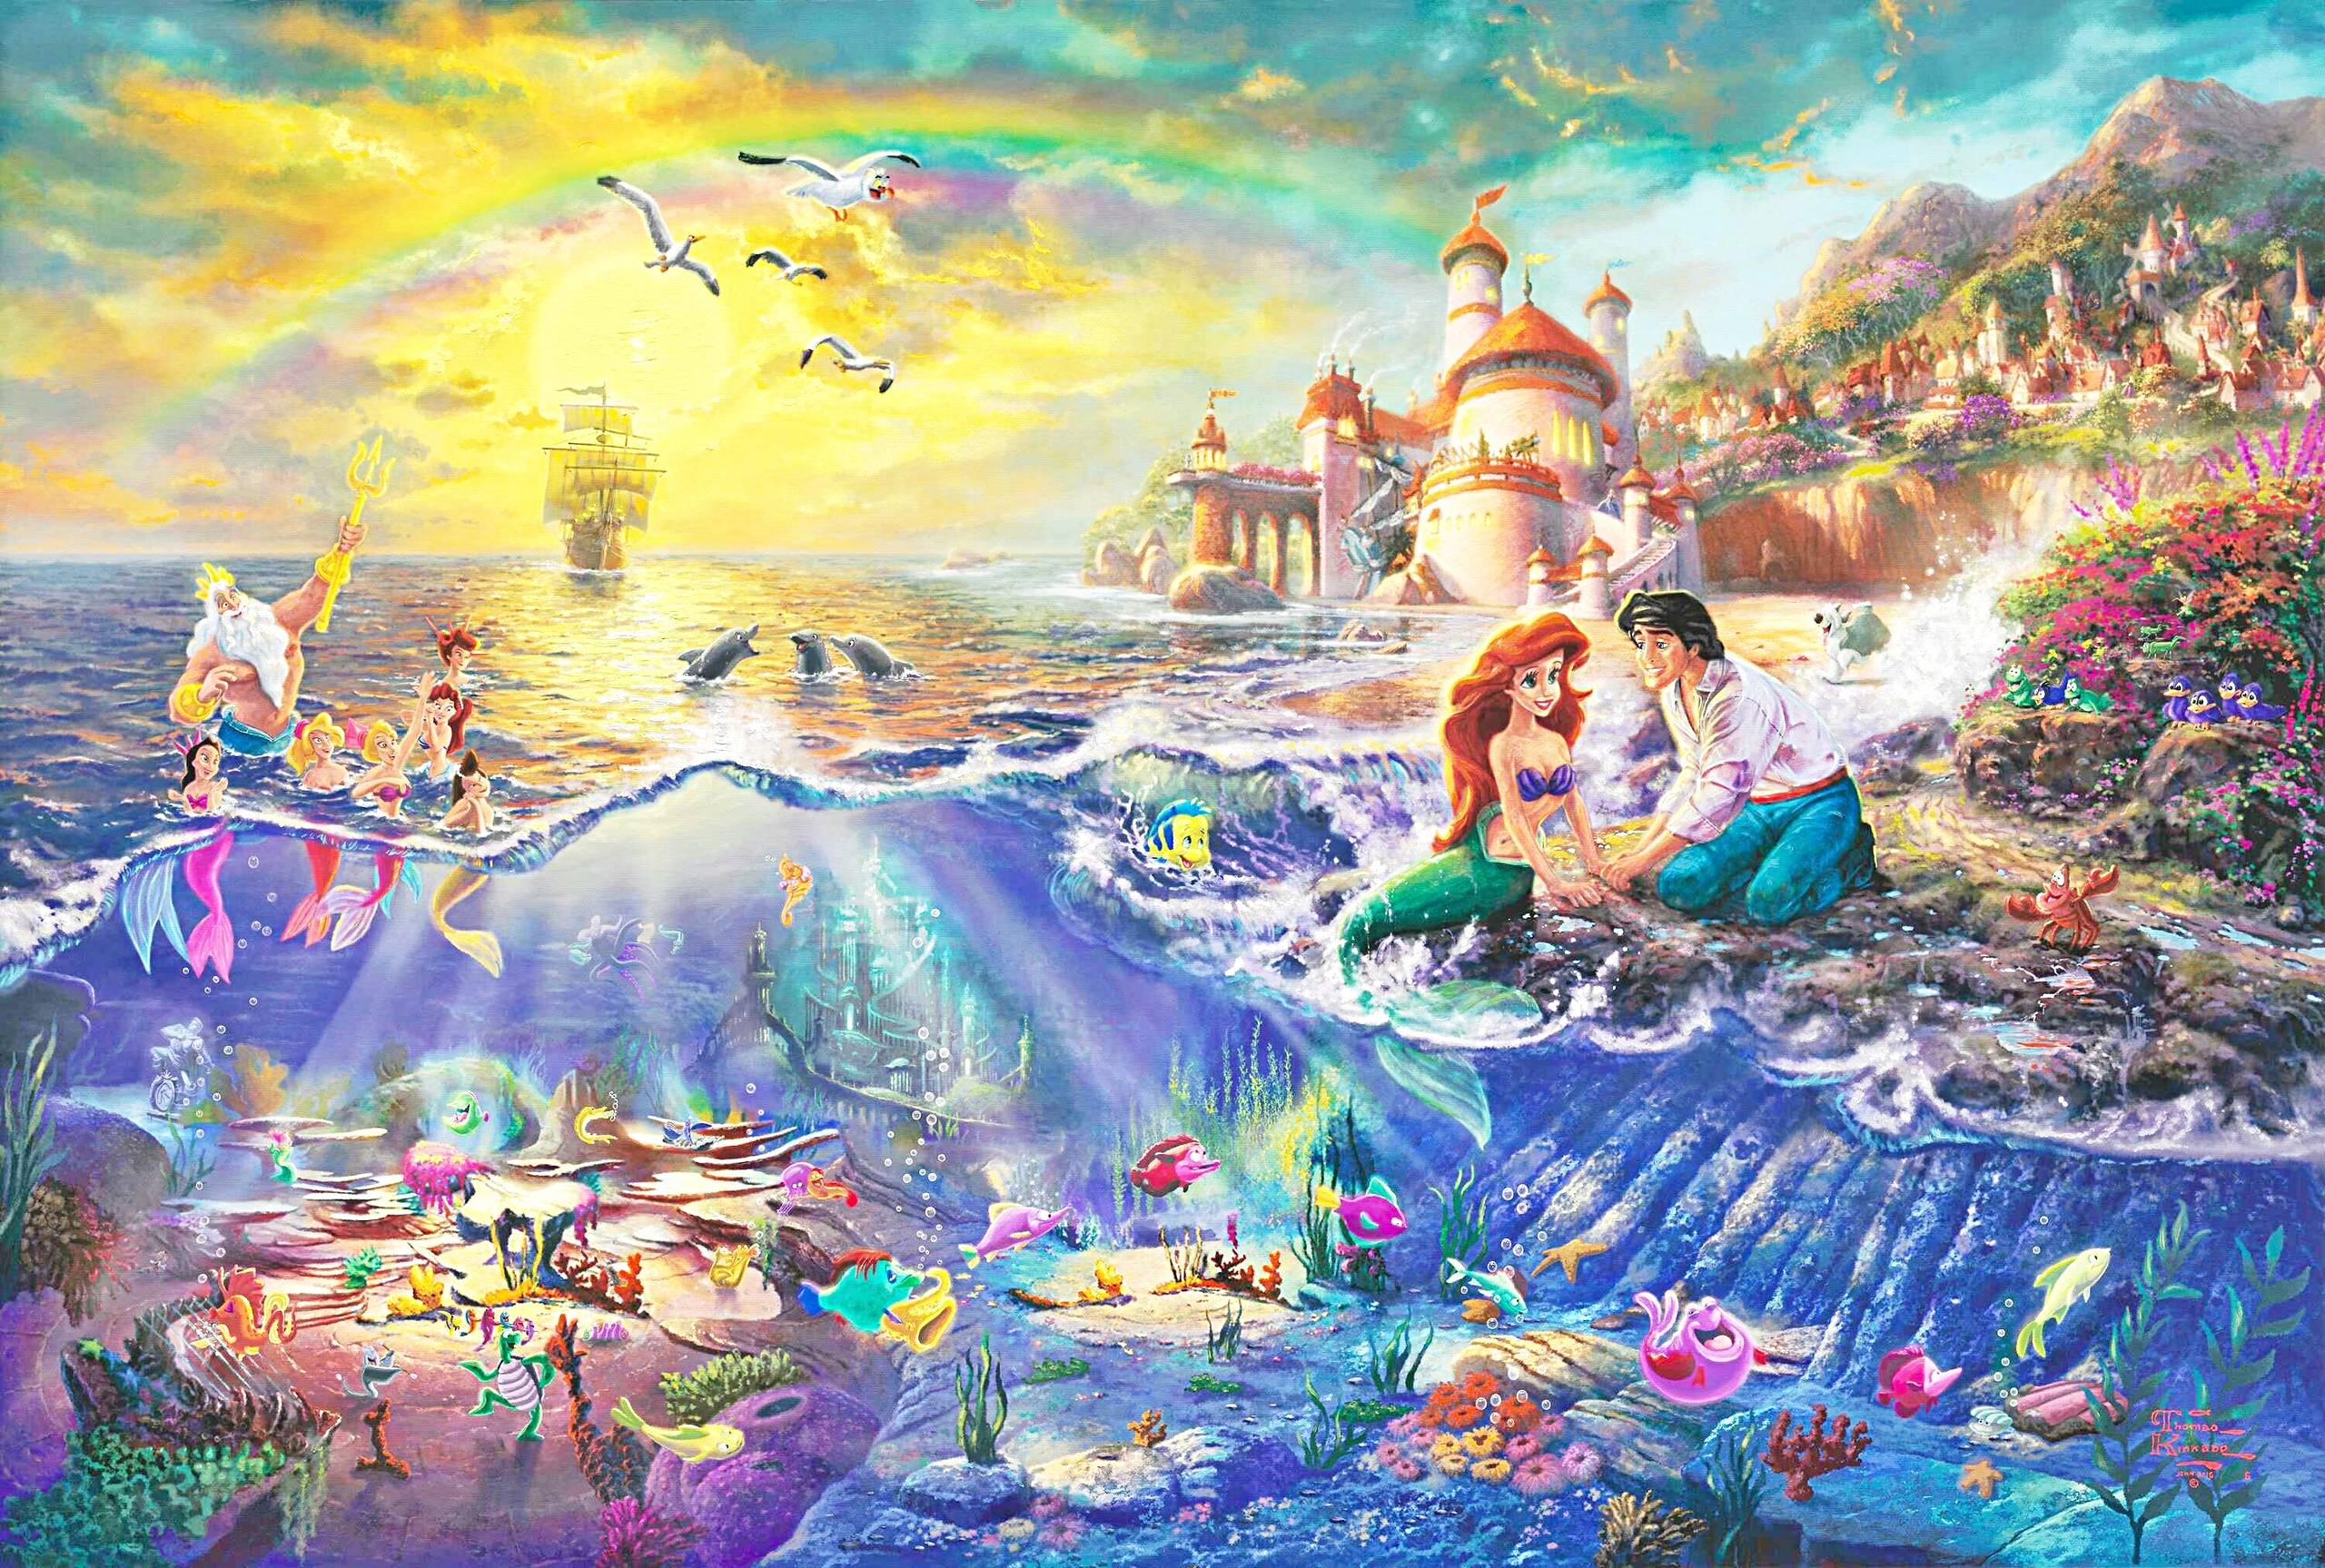 Thomas Kinkade Disney Wallpapers - Wallpaper Cave